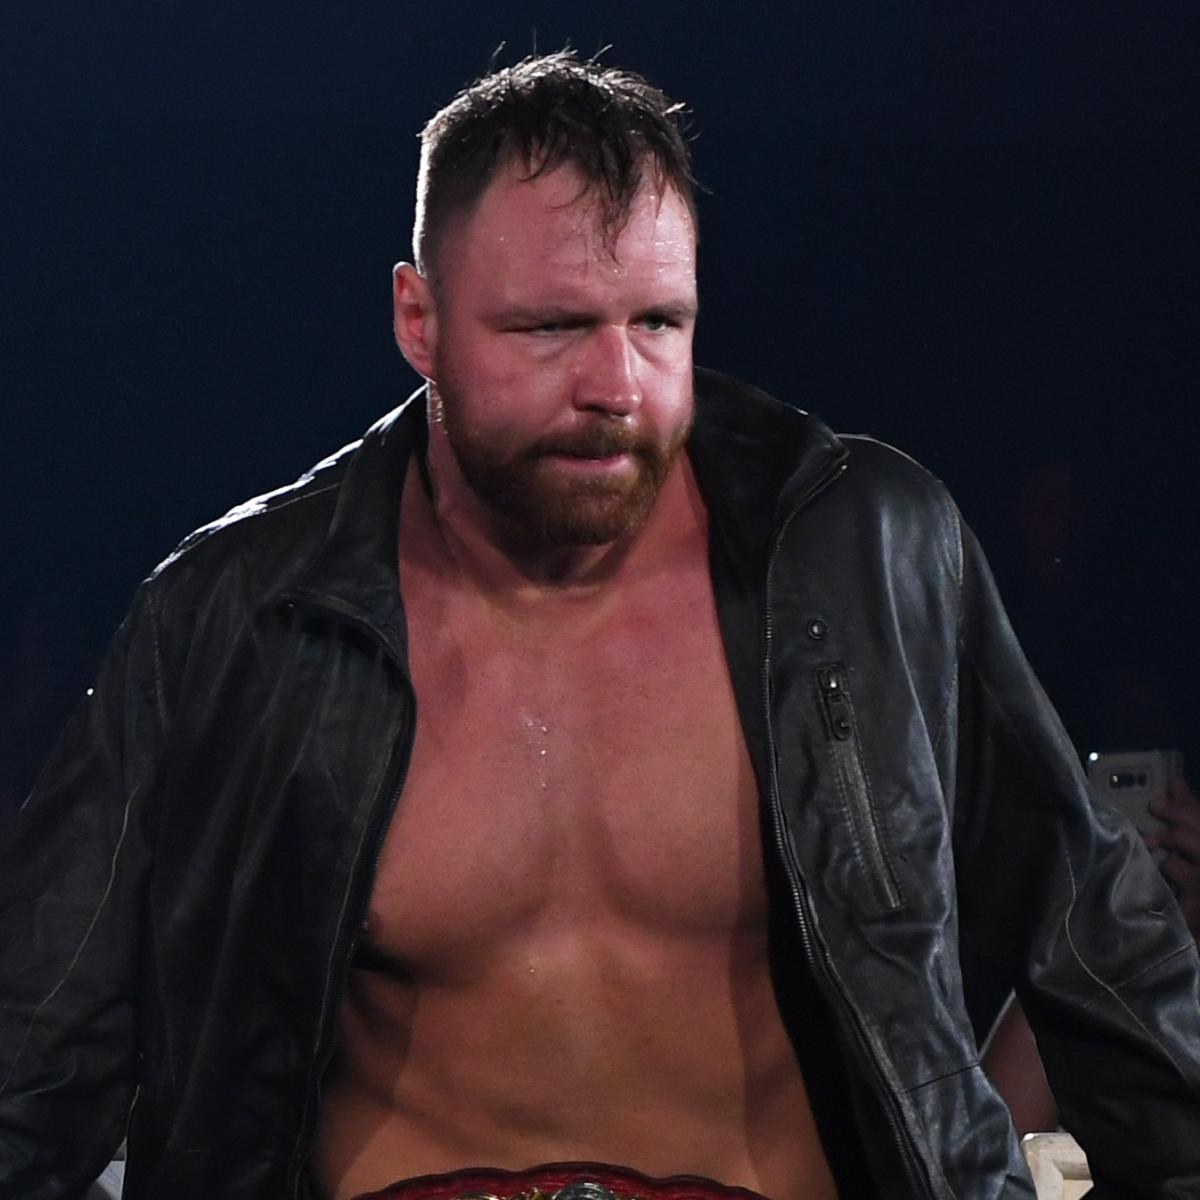 Look: Jon Moxley Shares Gnarly Image of Scars on His Back After AEW Fyter Fest